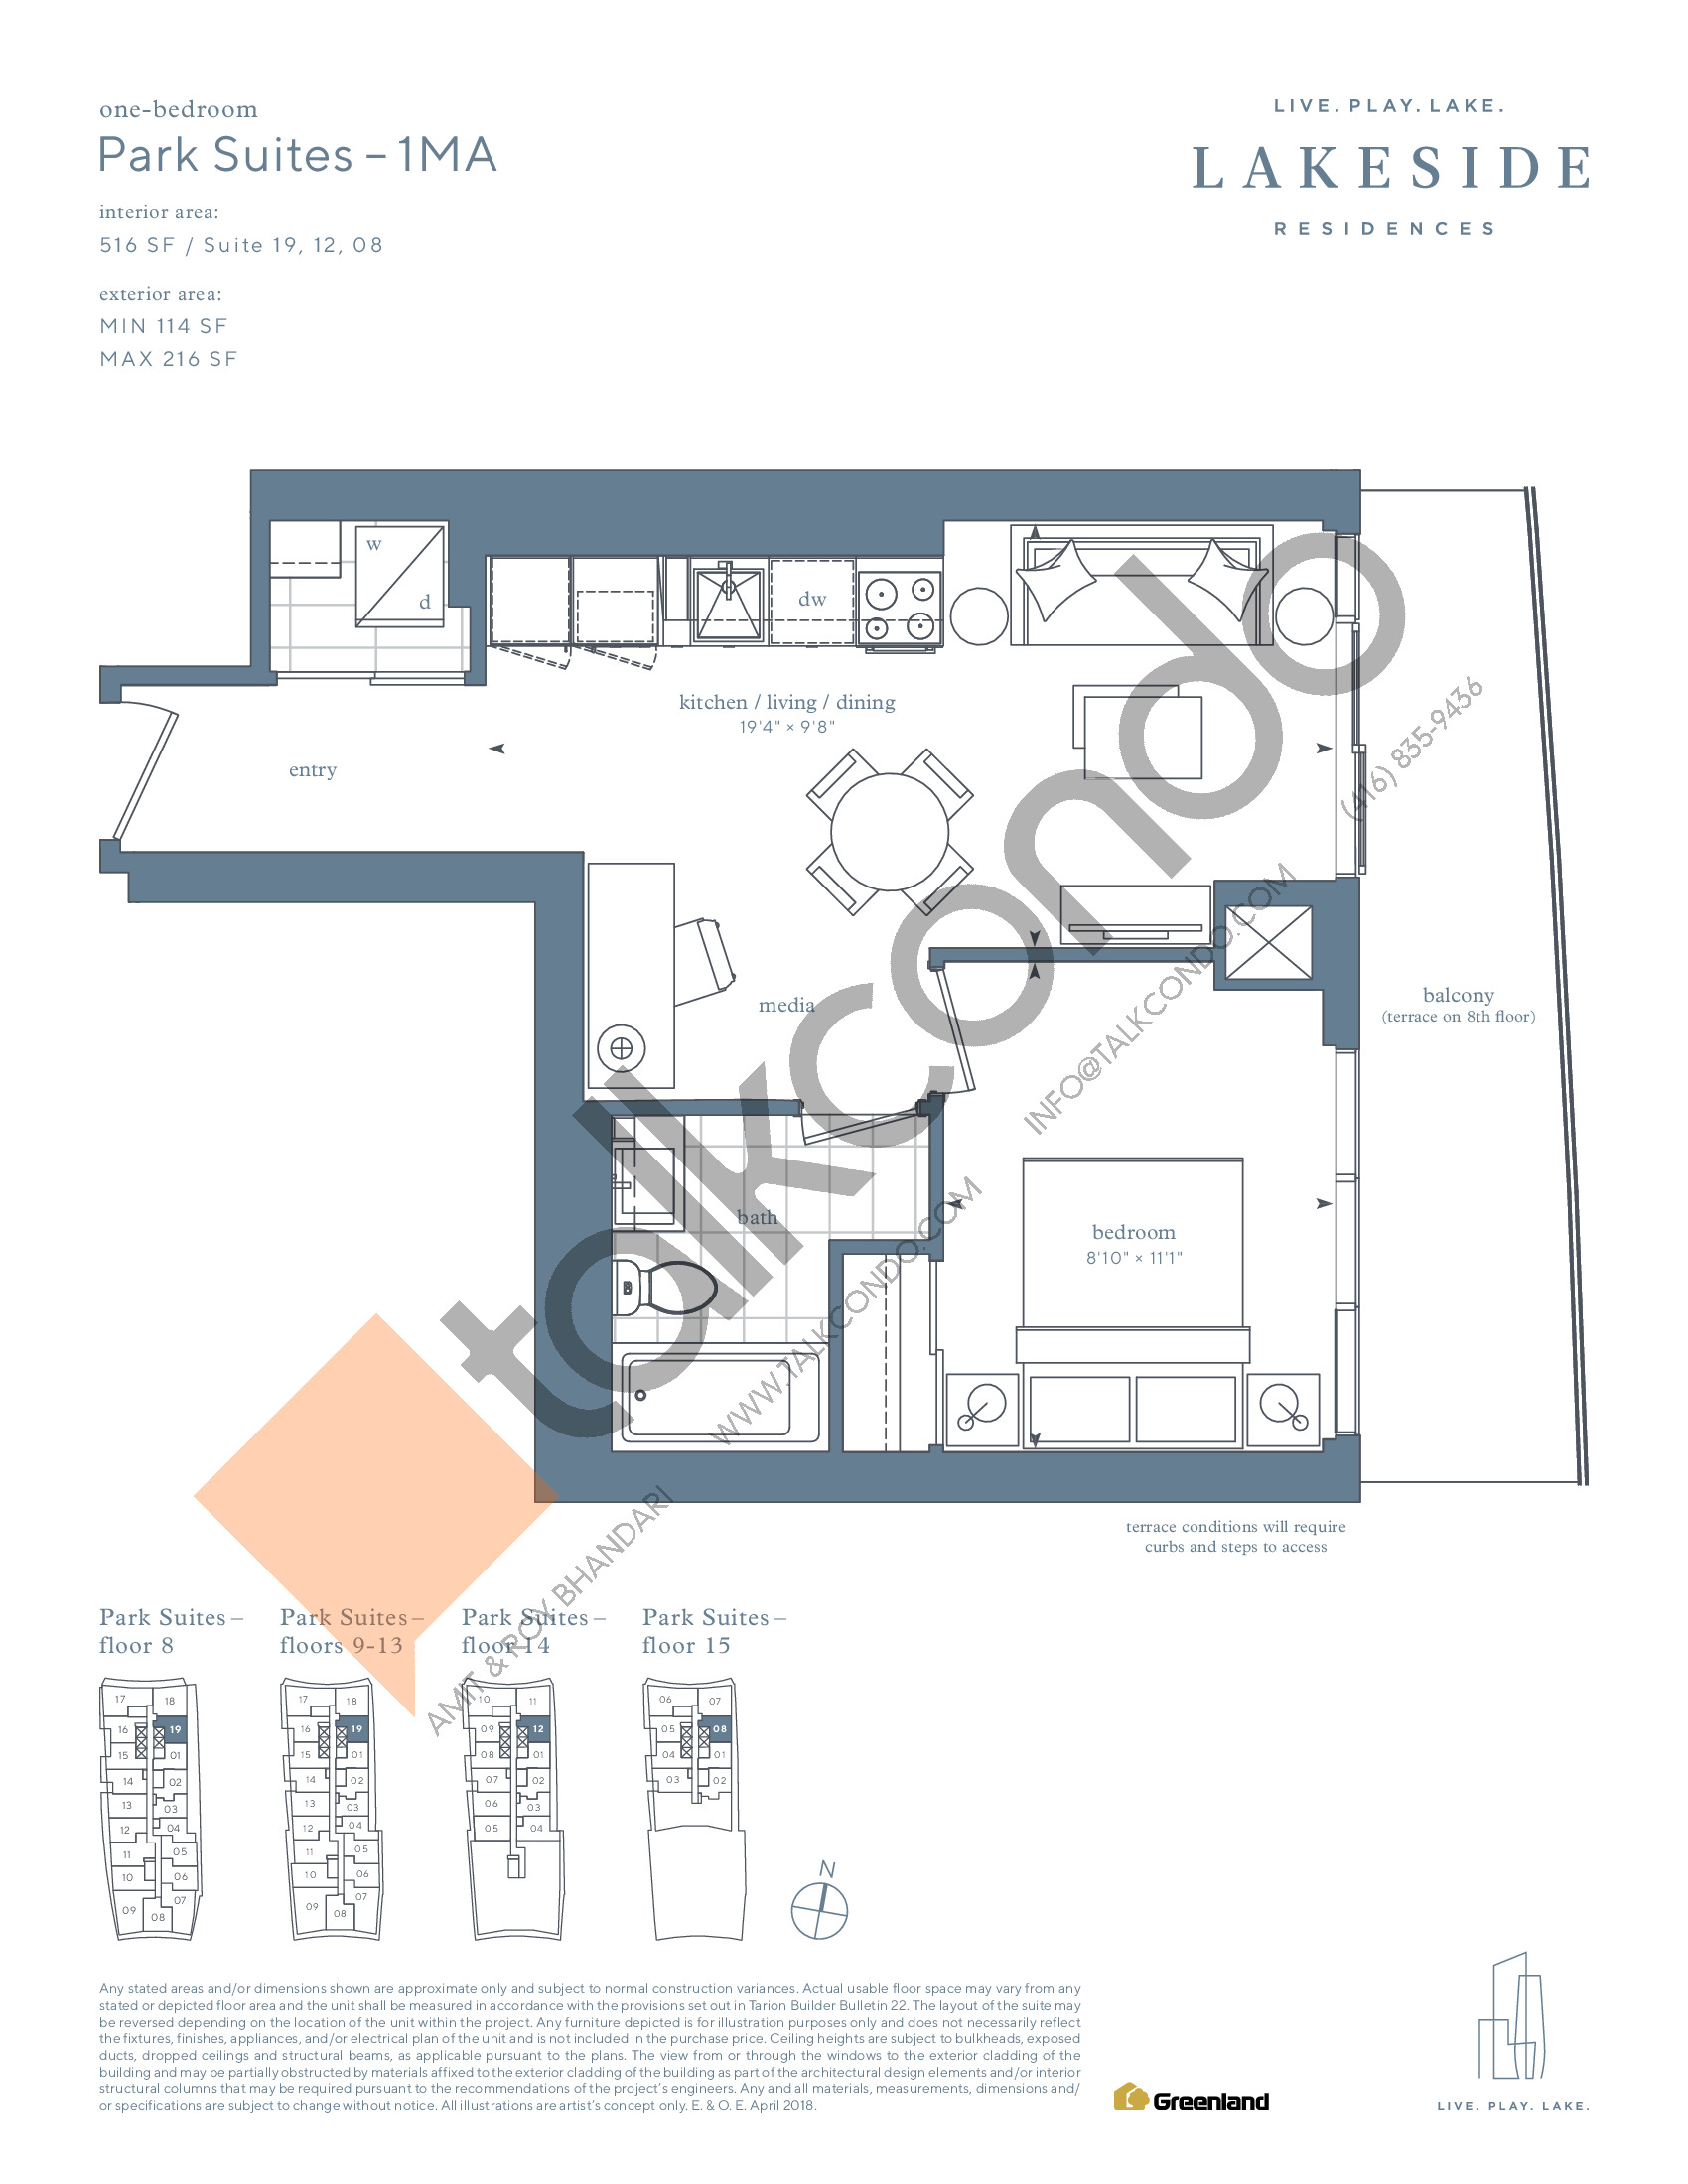 Park Suites - 1MA Floor Plan at Lakeside Residences - 516 sq.ft